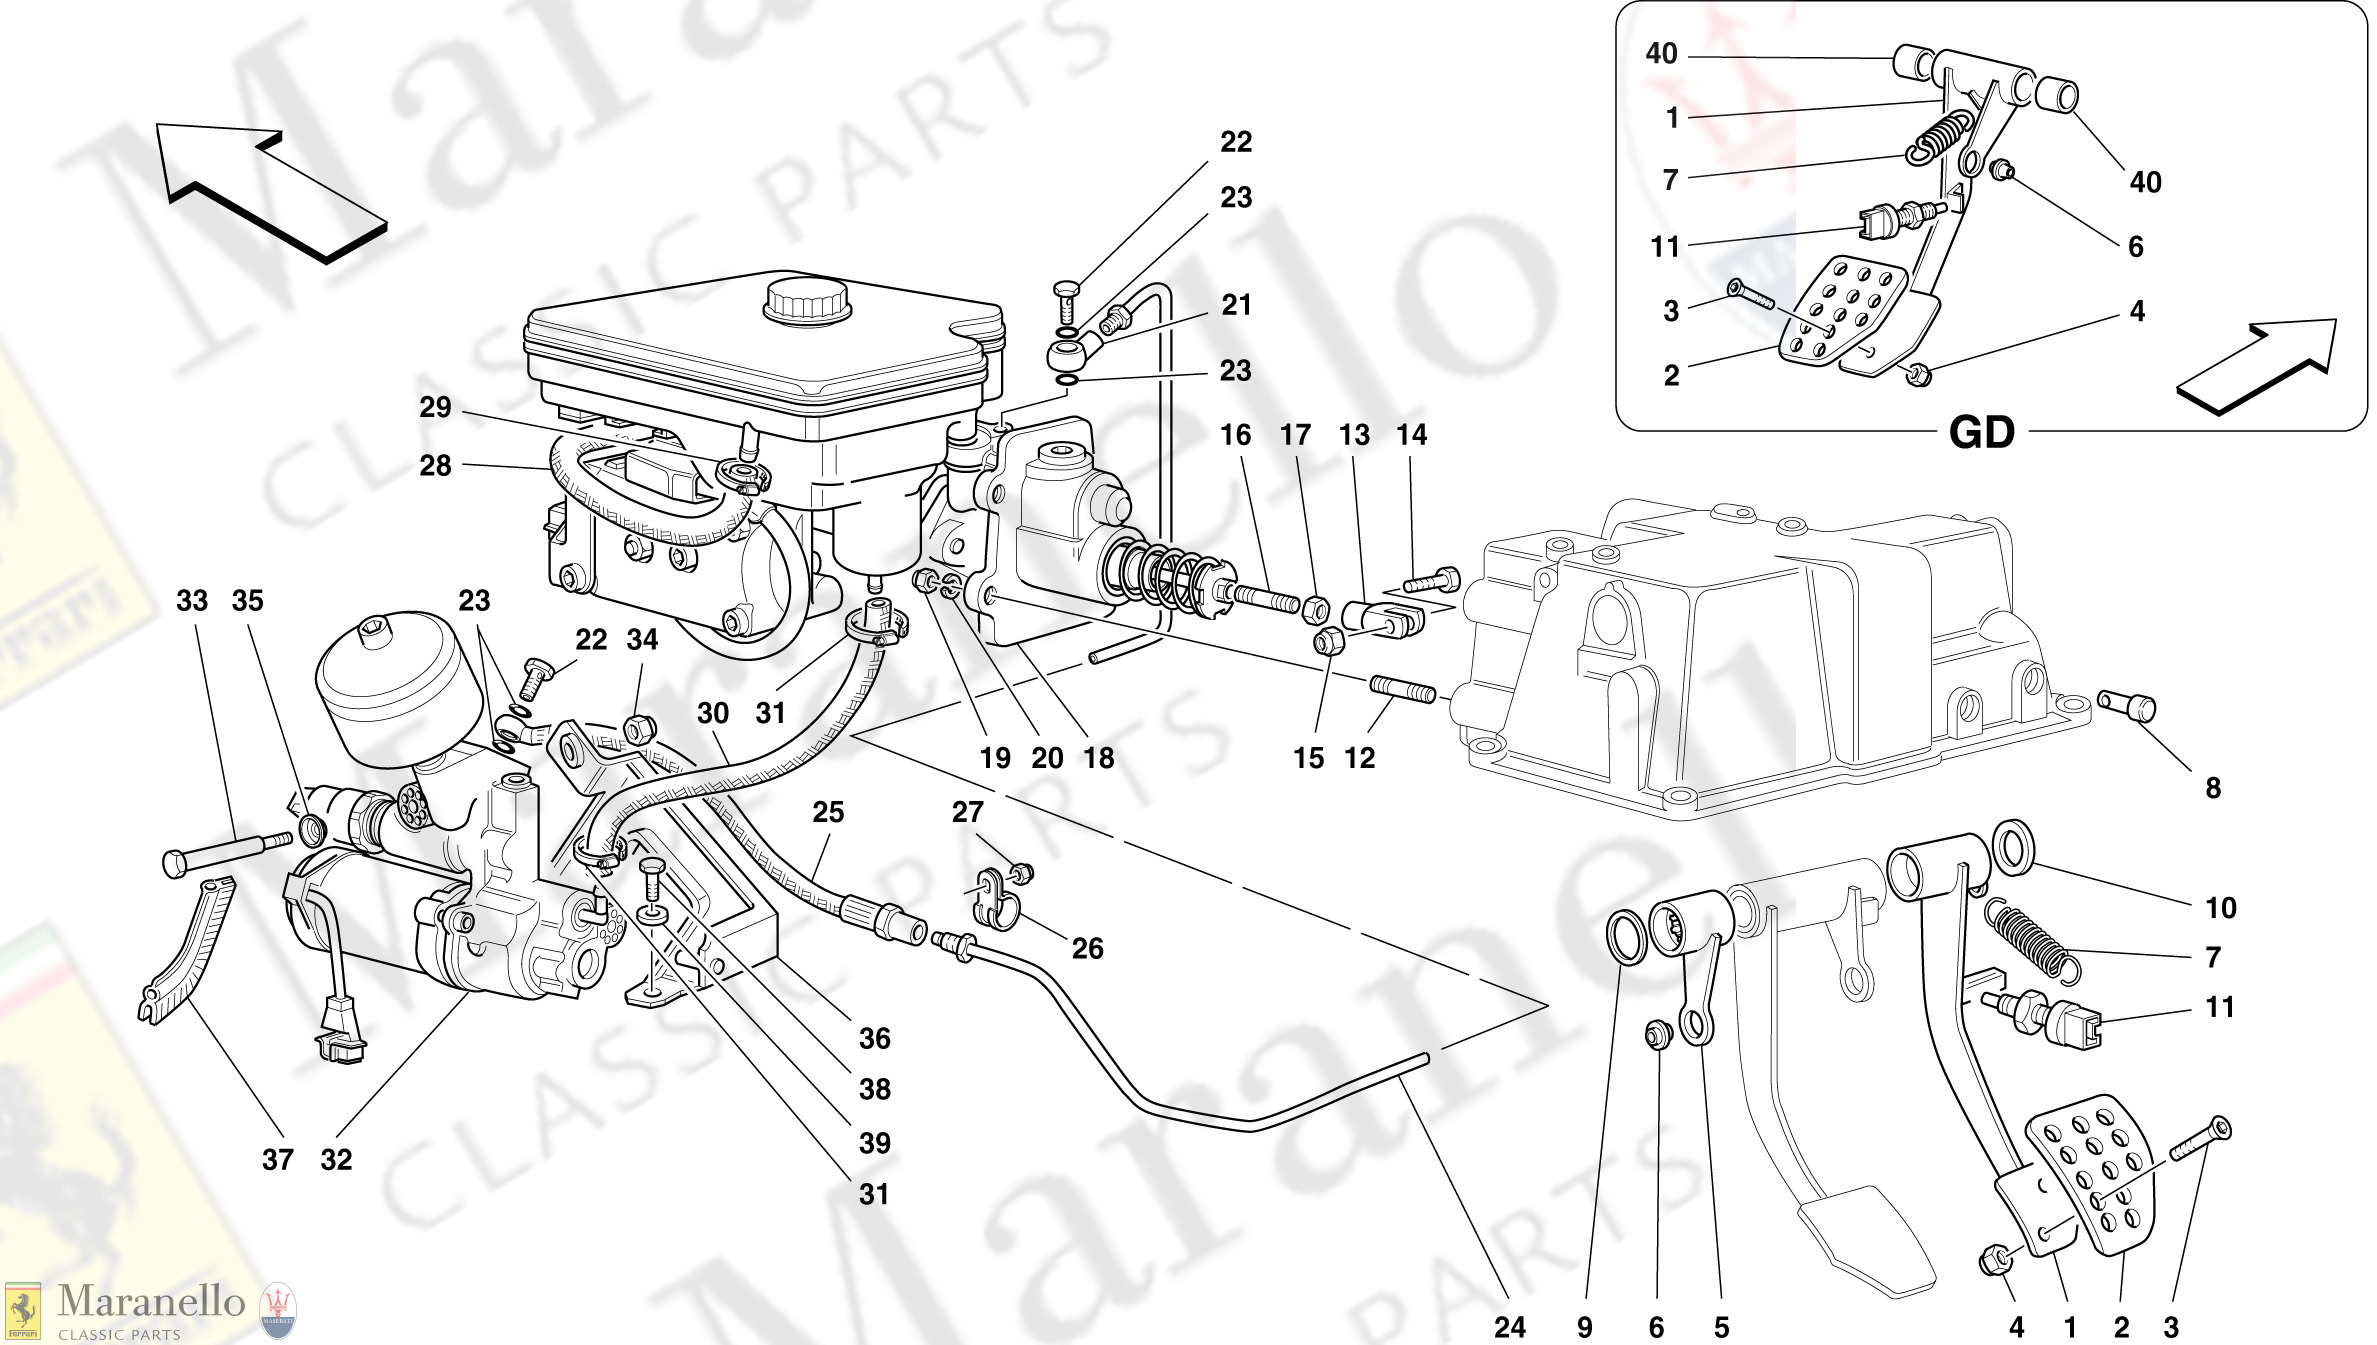 037 - Brake Hydraulic System -Not For Abs Bosch And 355 F1 Cars-